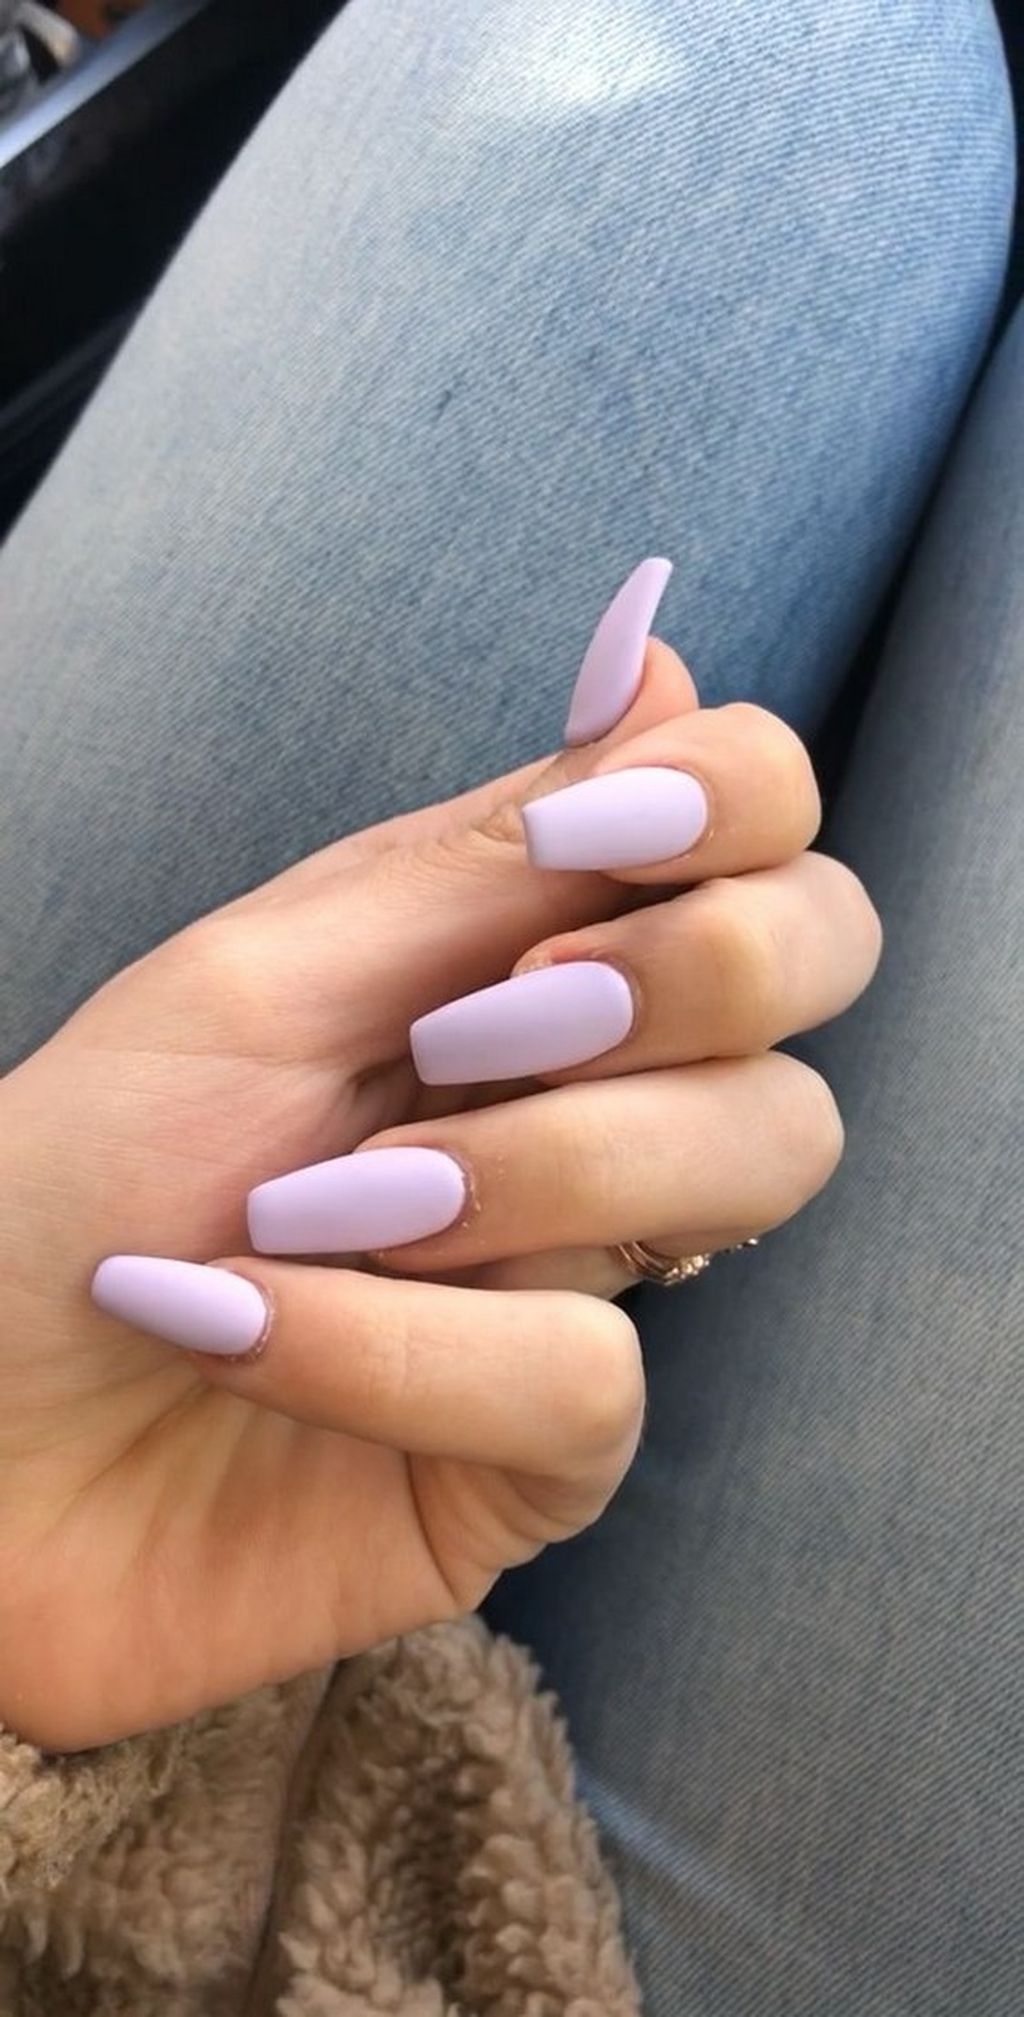 20 Charming Acrylic Nail Designs Ideas For Summer To Try In 2019 Purple Acrylic Nails Short Acrylic Nails Bride Nails